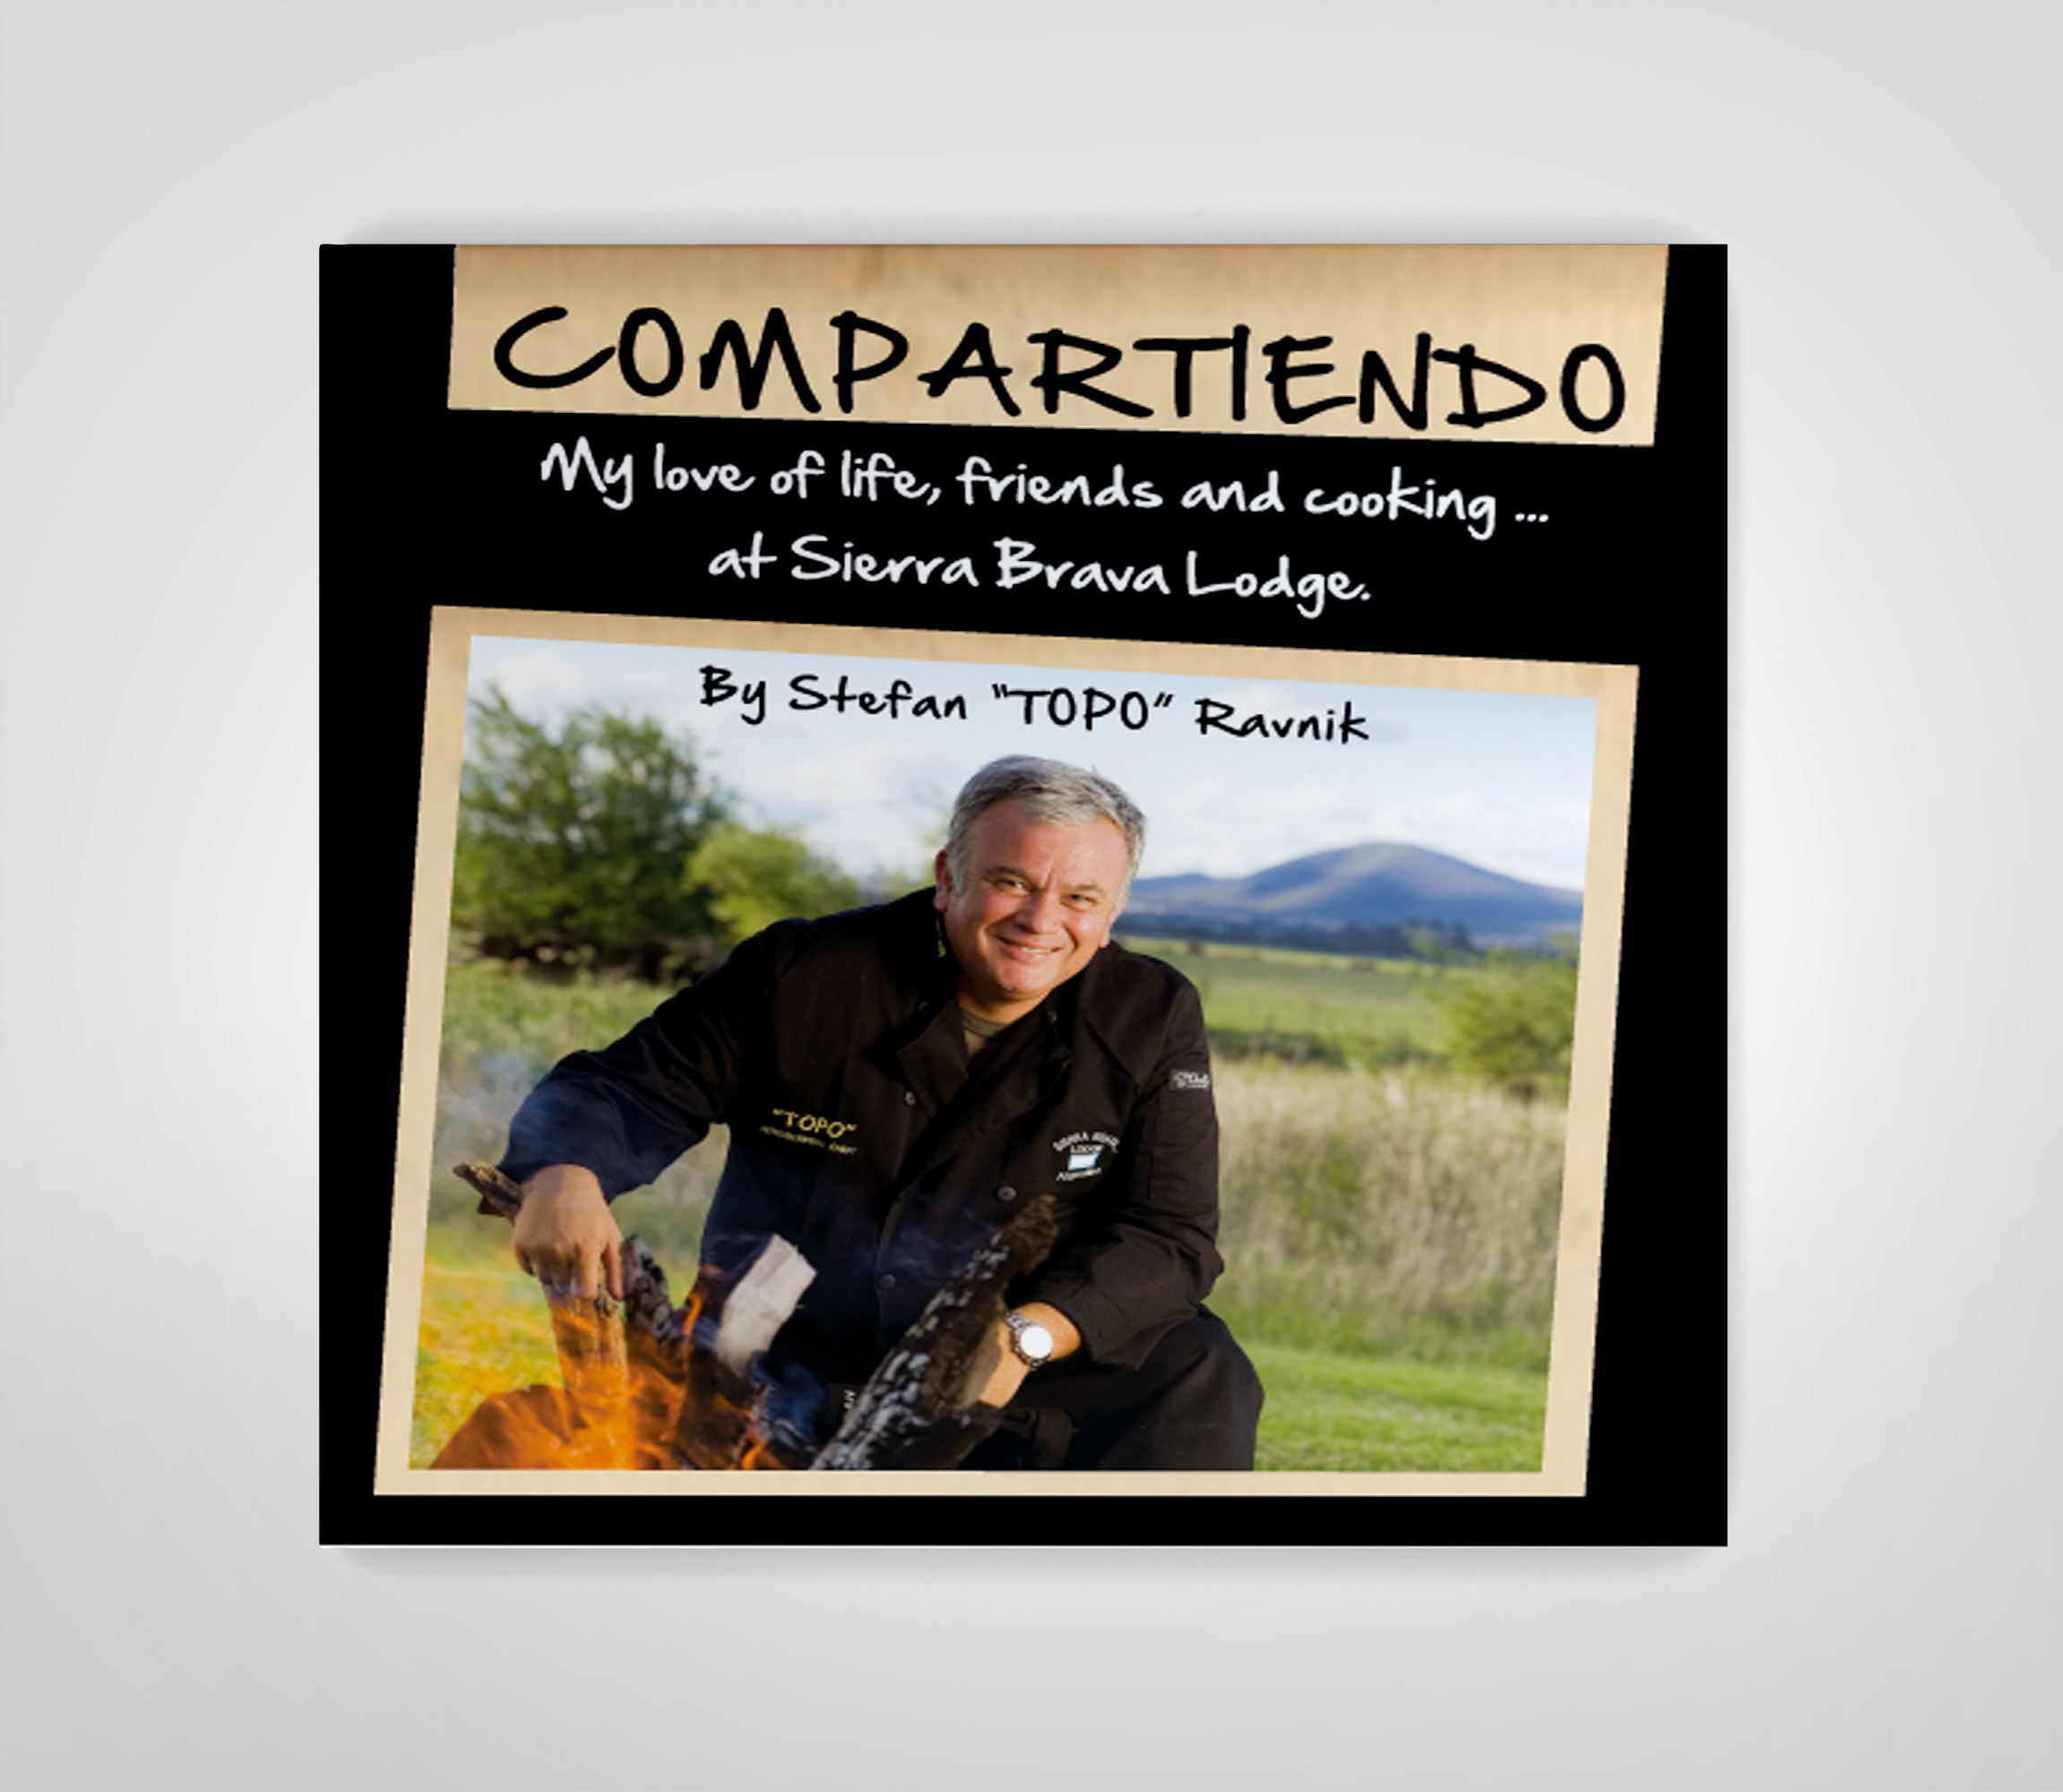 landscape-book-compartiendo-2-copia1